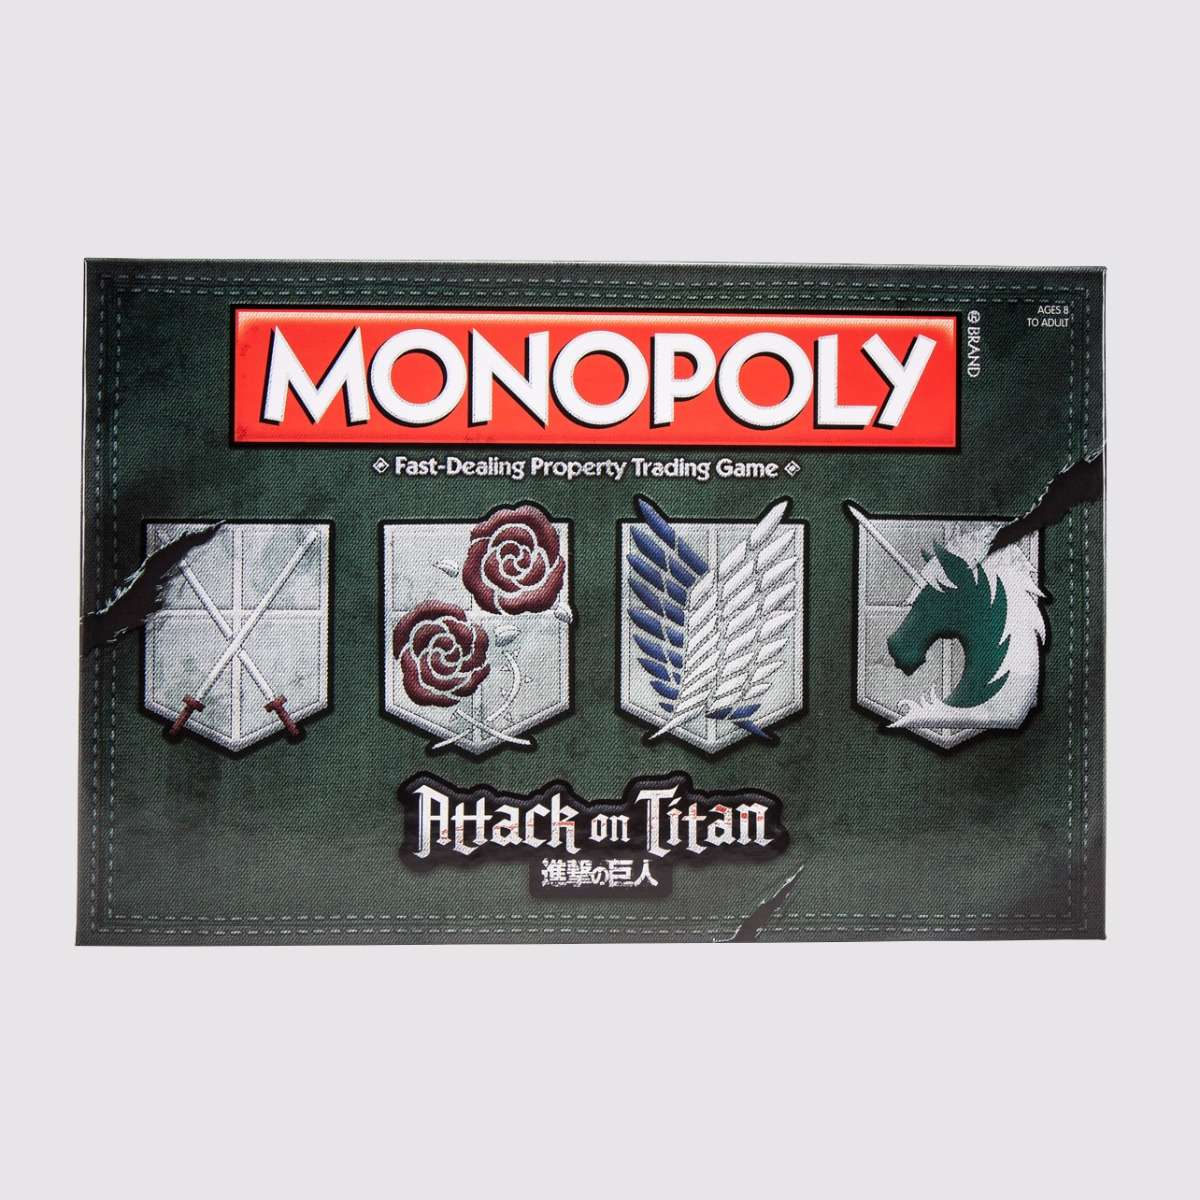 Monopoly toys-games